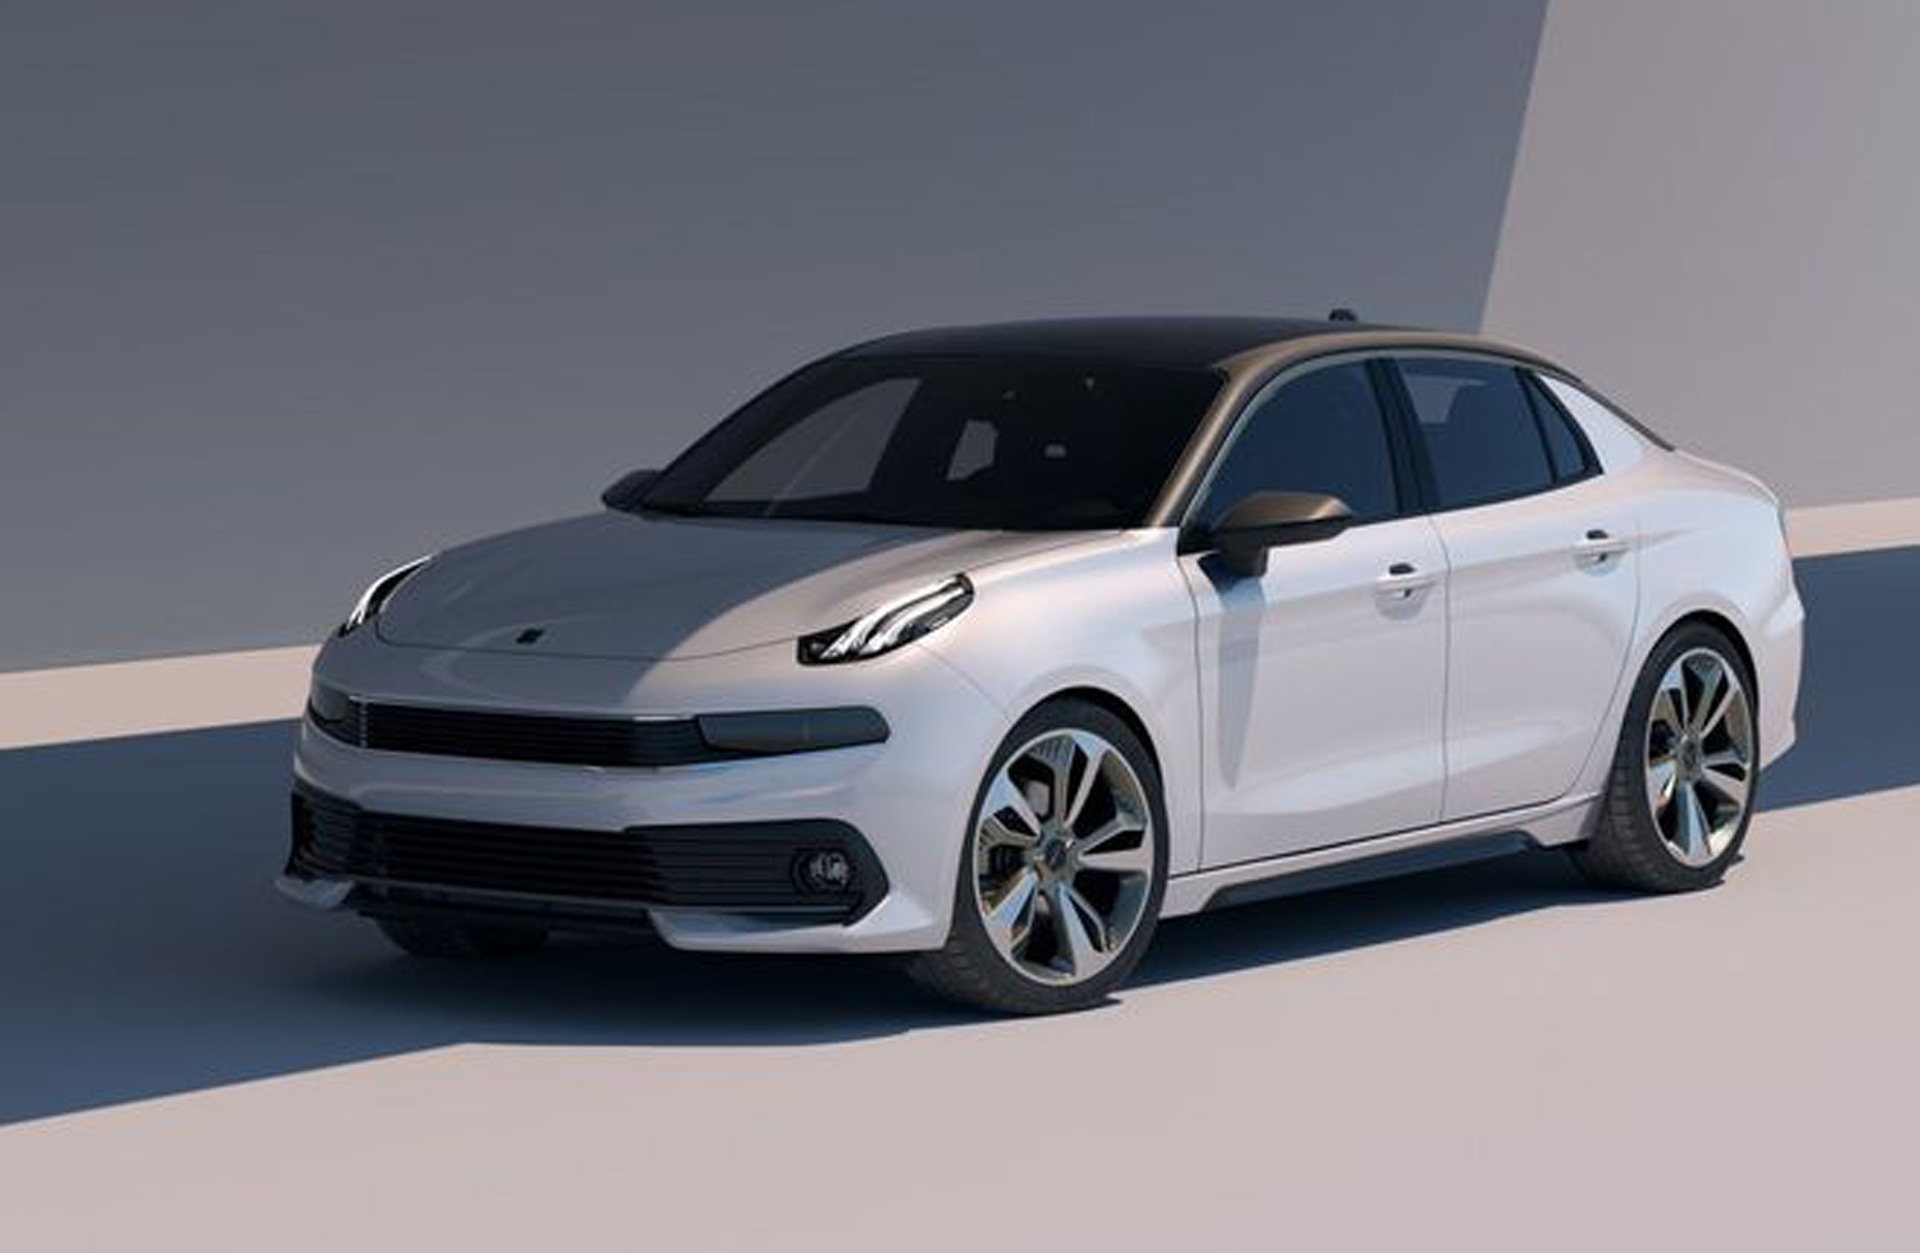 Gm Roadside Assistance >> Lynk & Co says its cars will have lifetime warranties